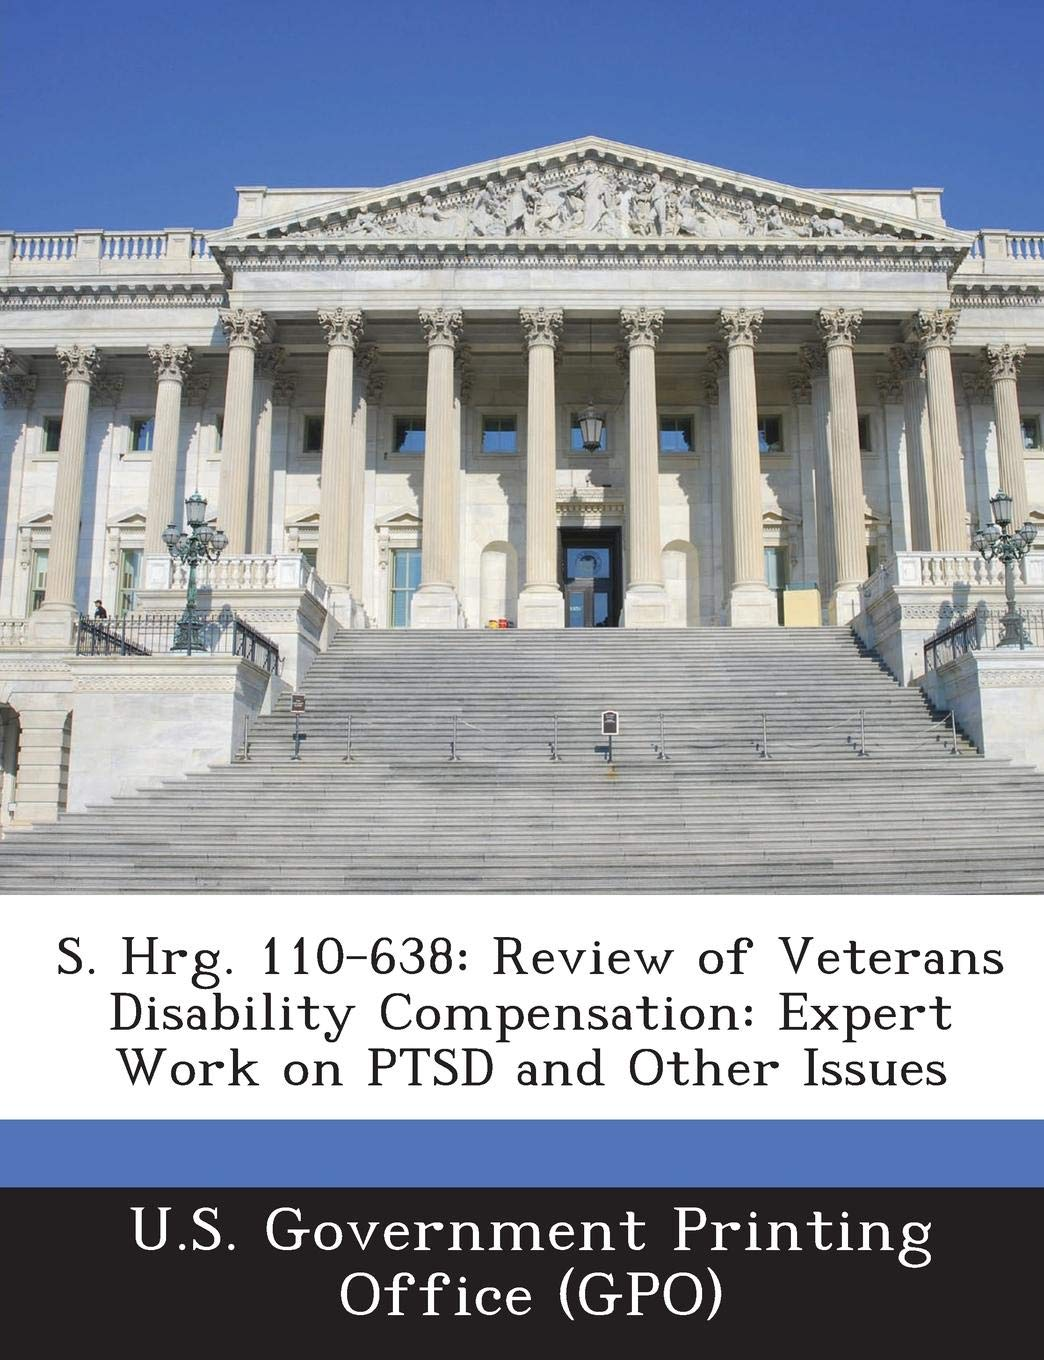 S  Hrg  110-638: Review of Veterans Disability Compensation: Expert